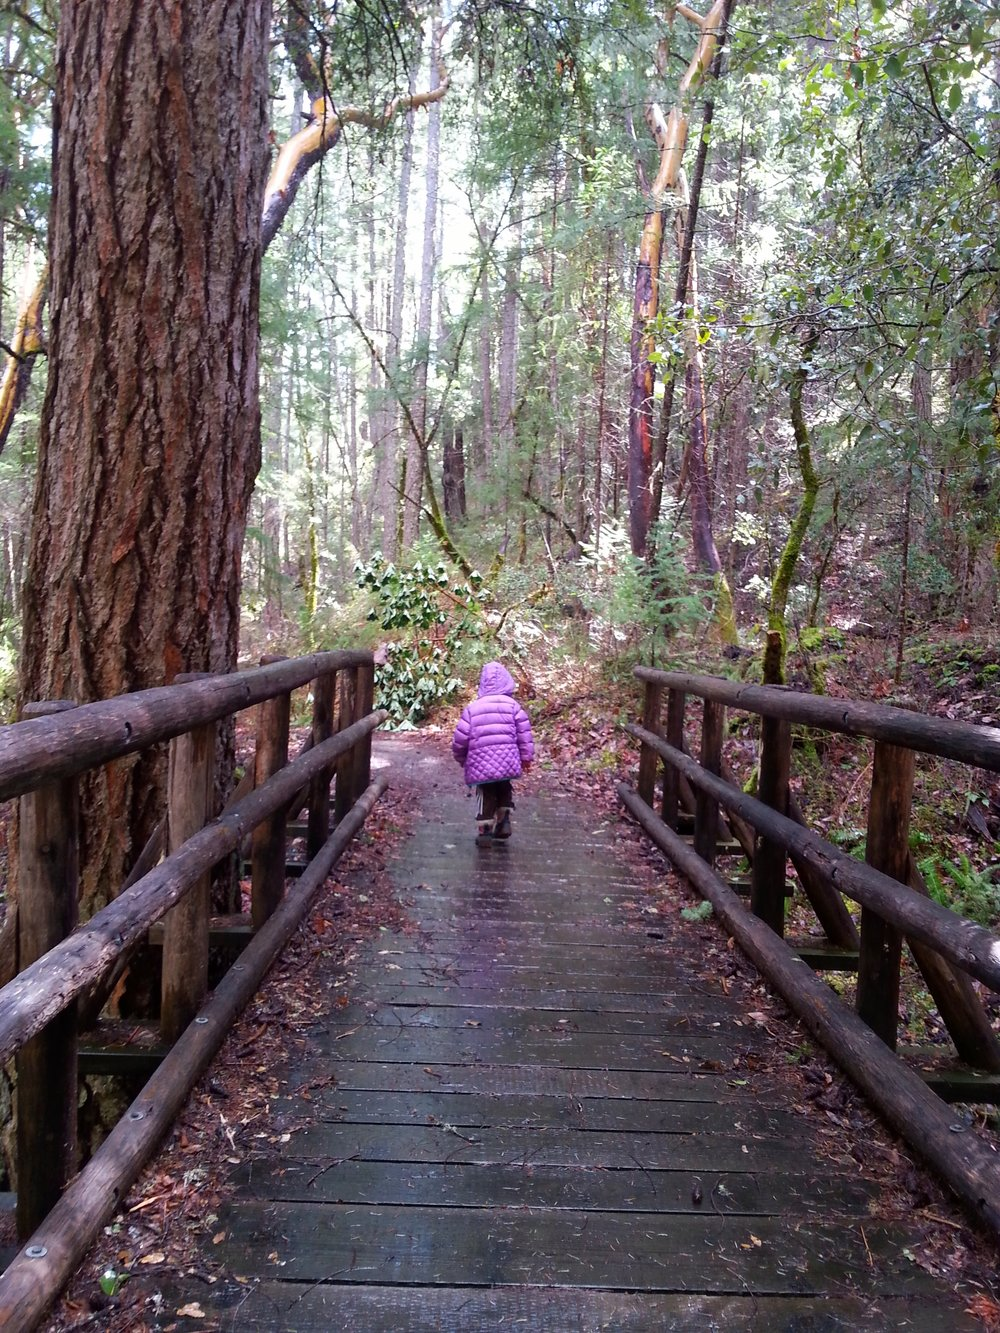 BIGFOOT TRAP - COLLINGS MOUNTAIN TRAIL #943 - What to do in Southern Oregon - Things to do - Hiking - Kids - Applegate - Jacksonville